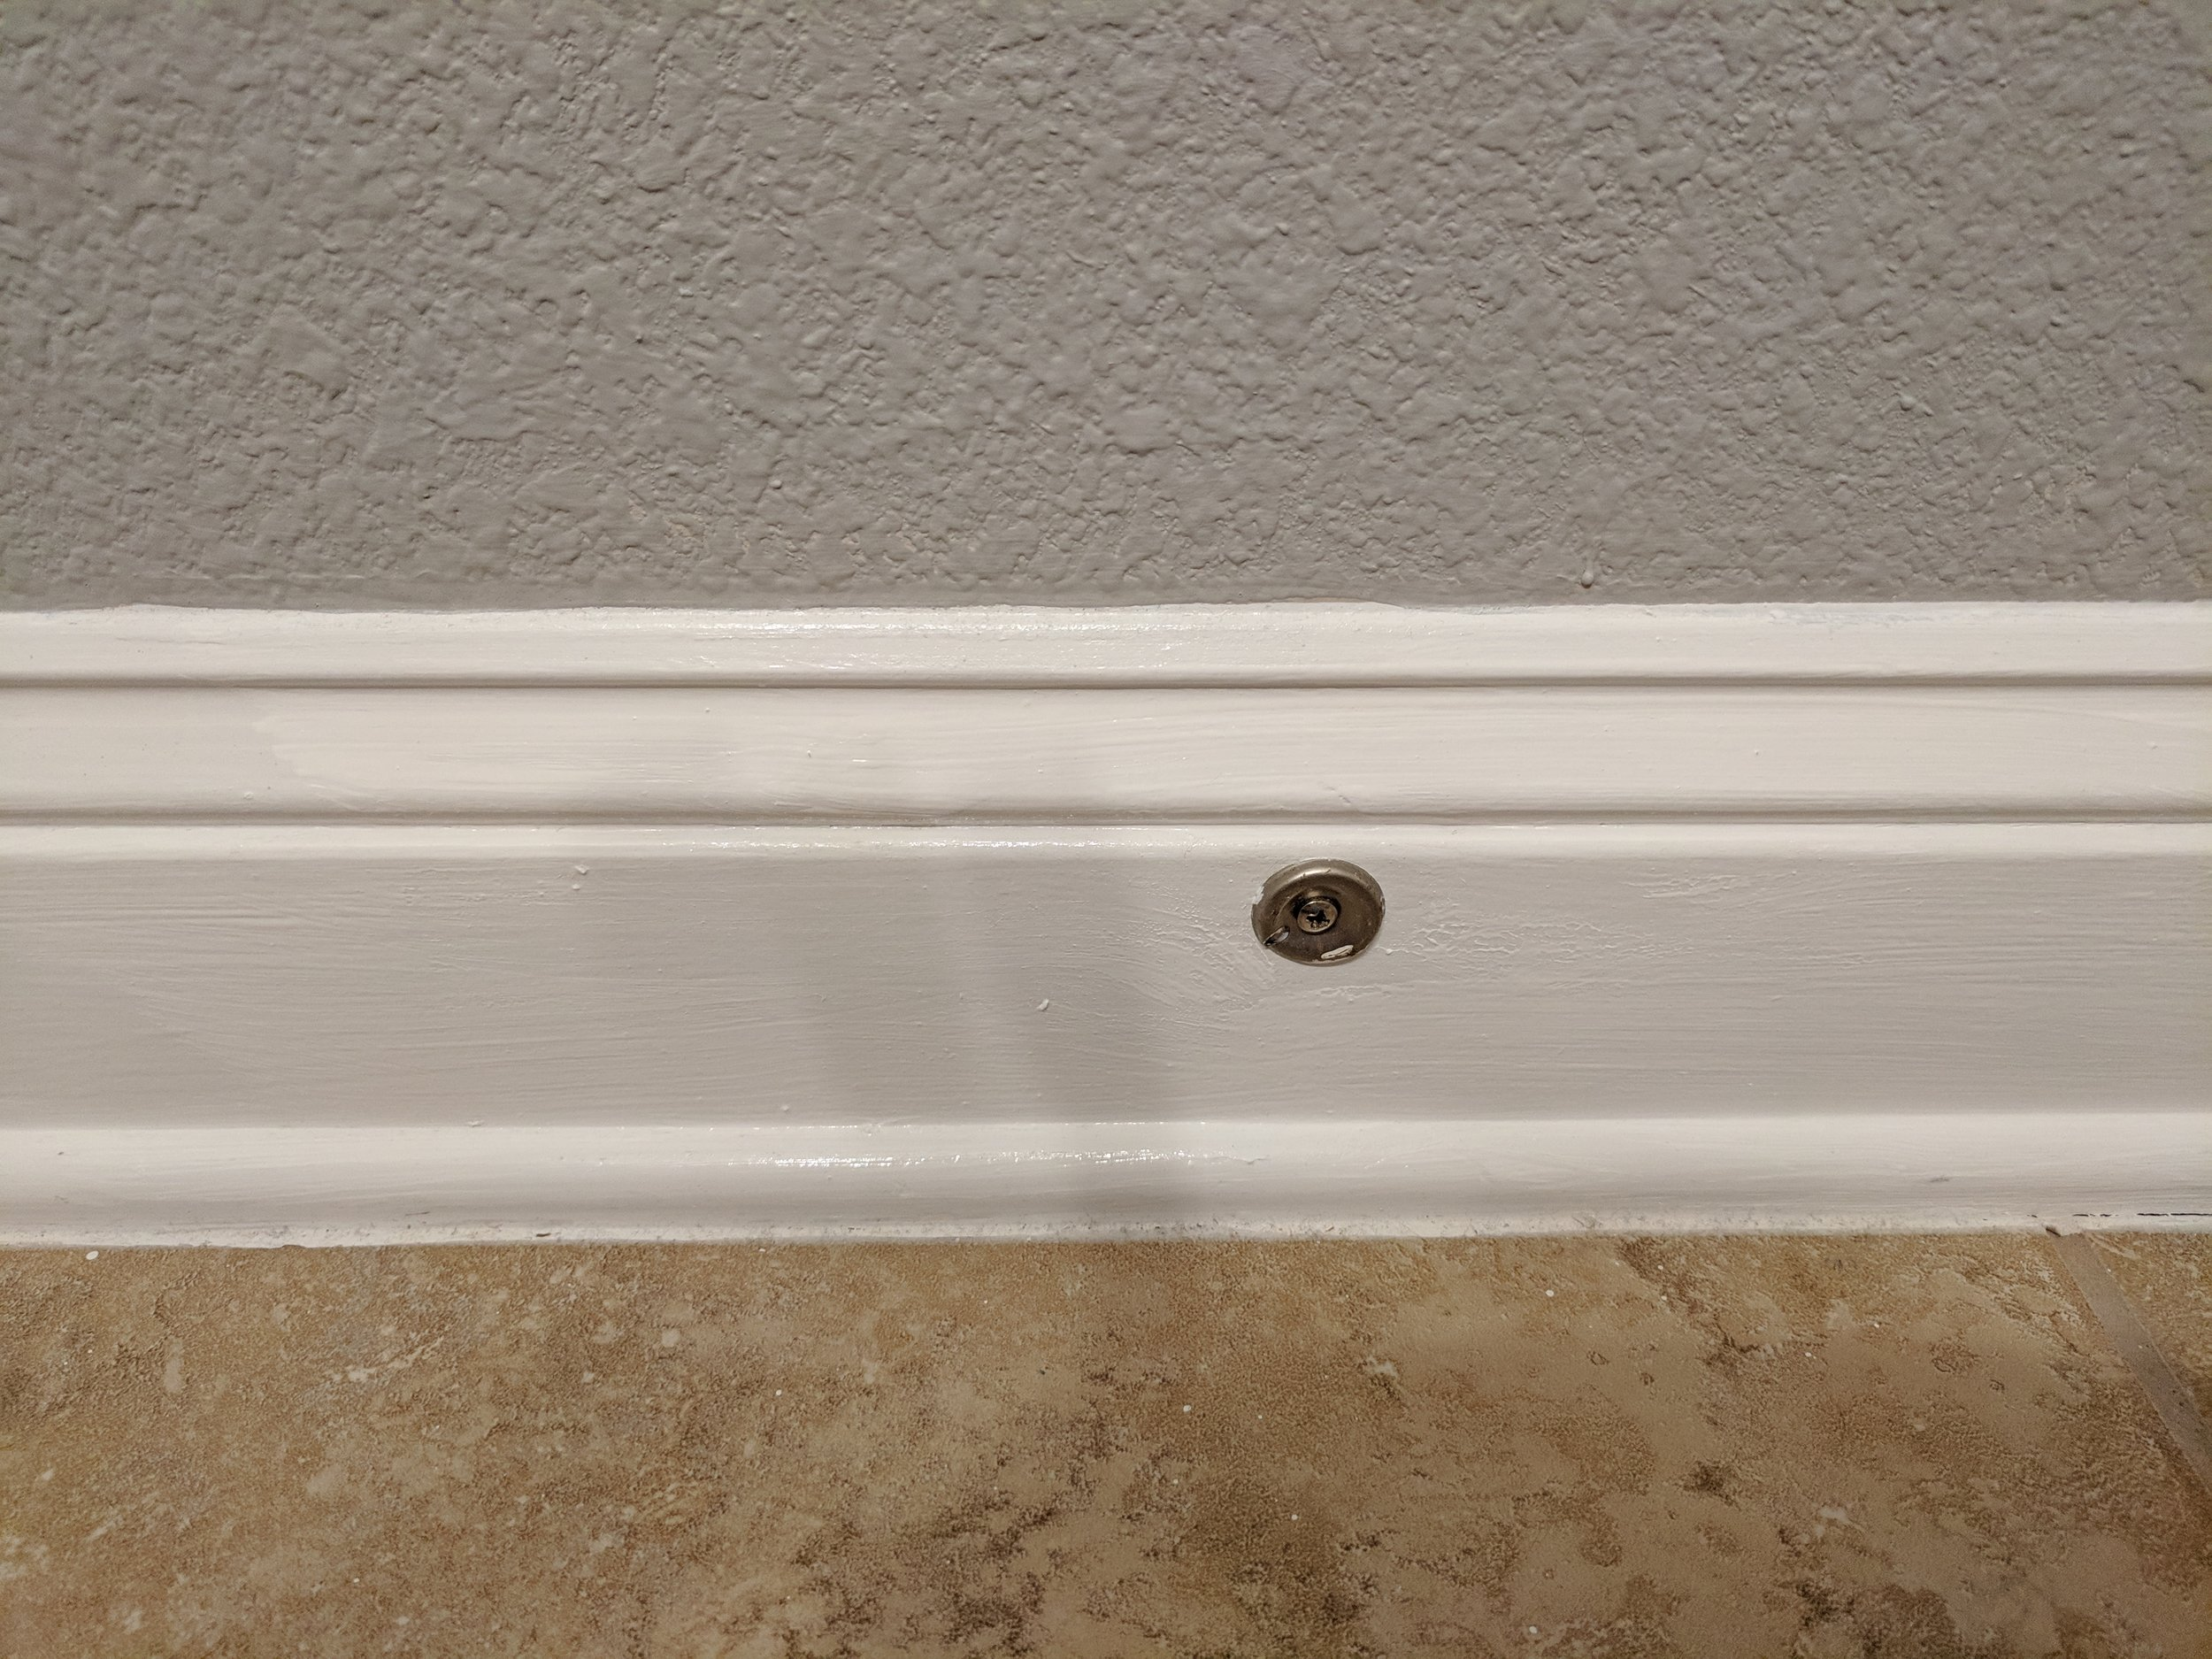 Cleaning and painting the baseboards made a huge difference in updating the bathroom.